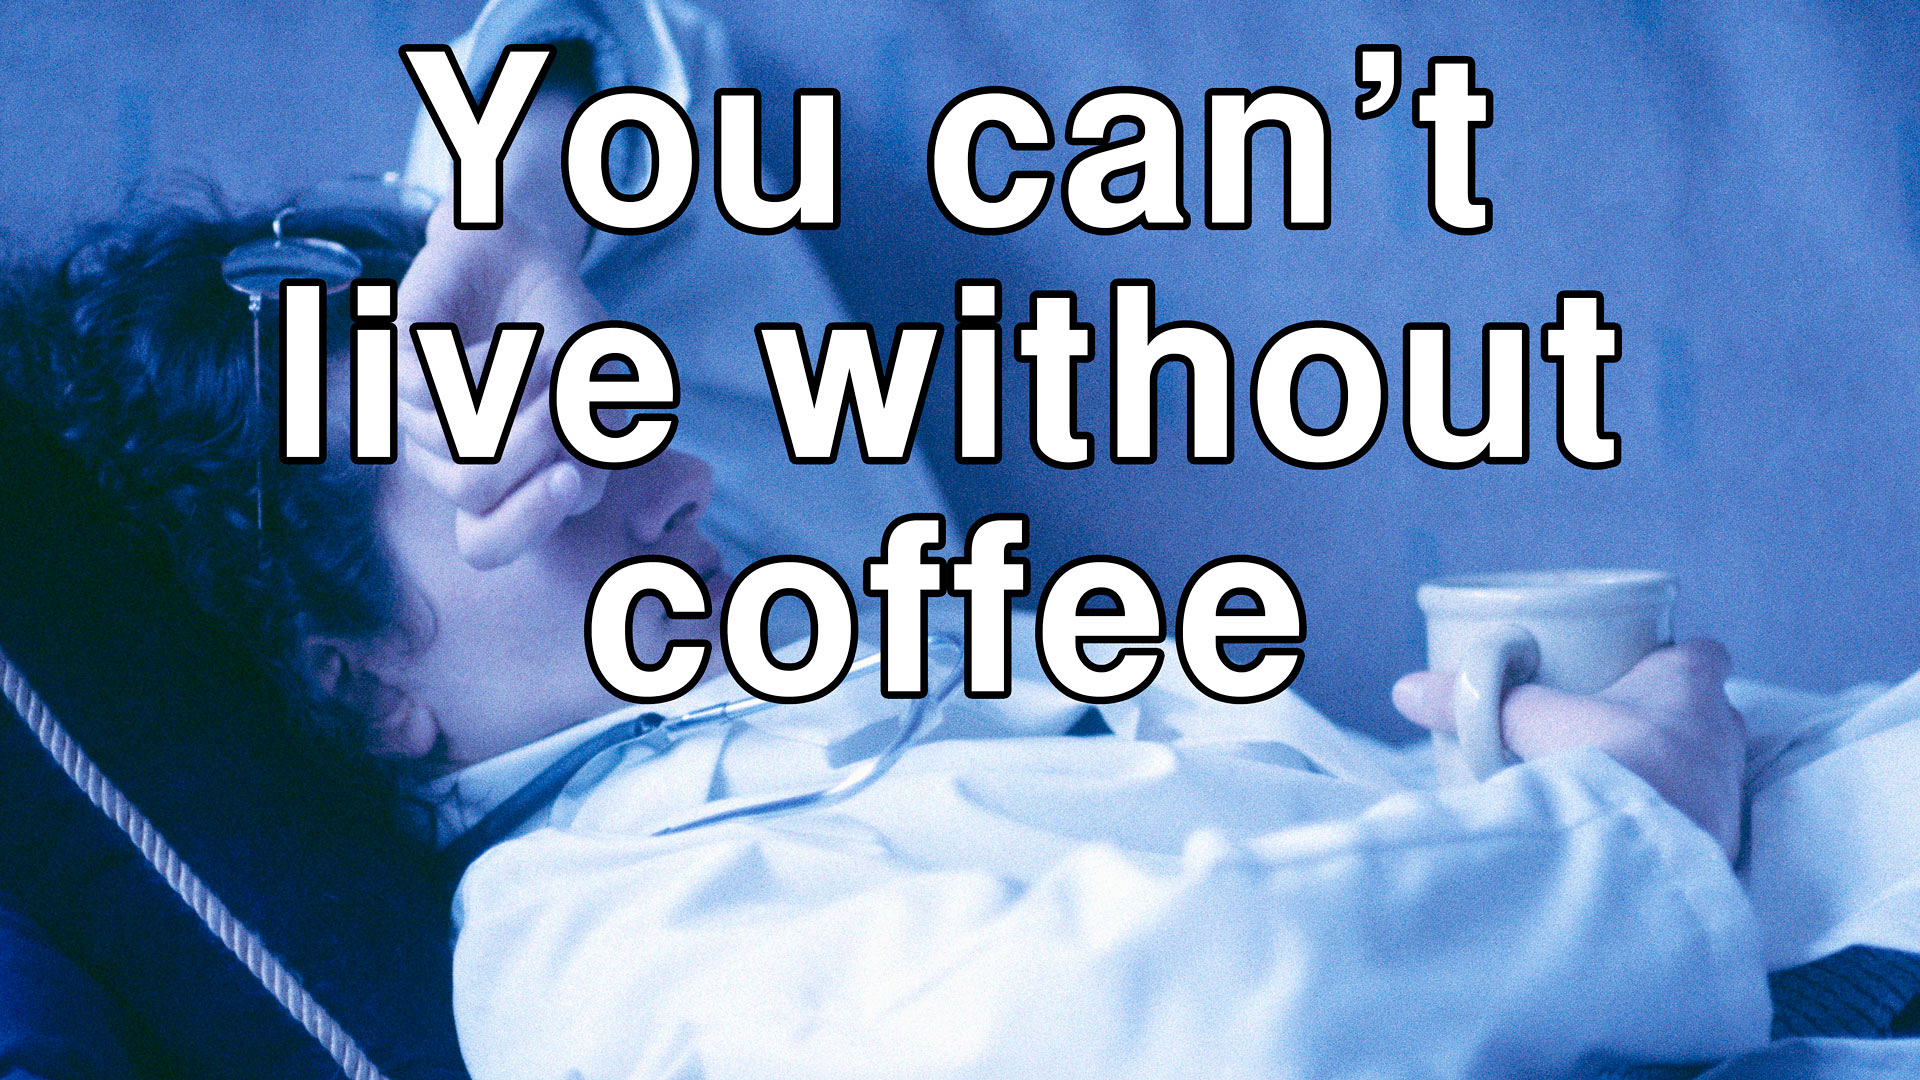 You can't live without coffee